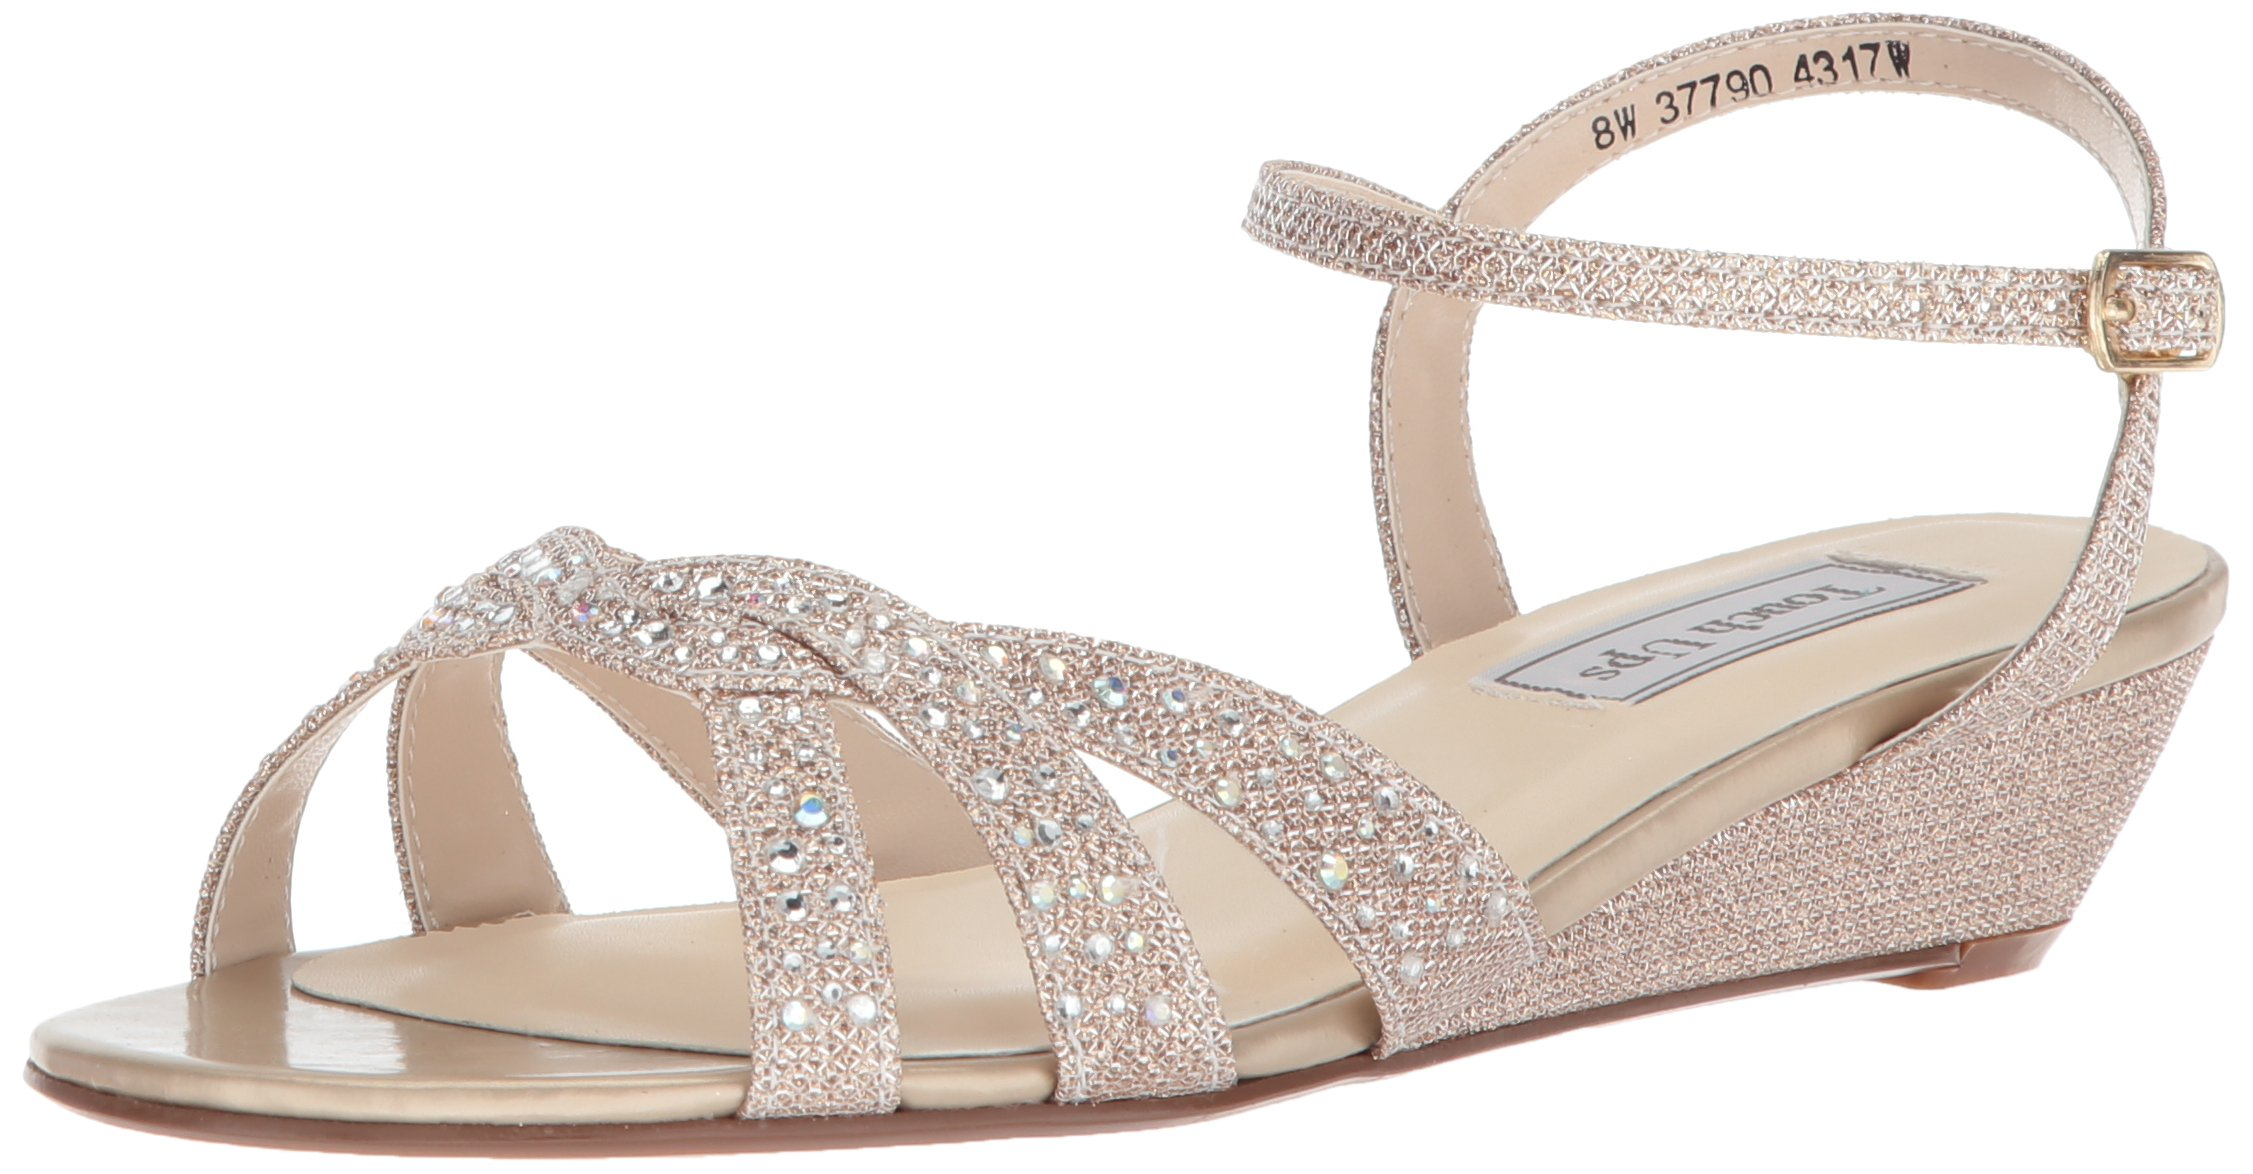 Touch Ups Women's Lena Wedge Sandal, Champagne, 9.5 M US